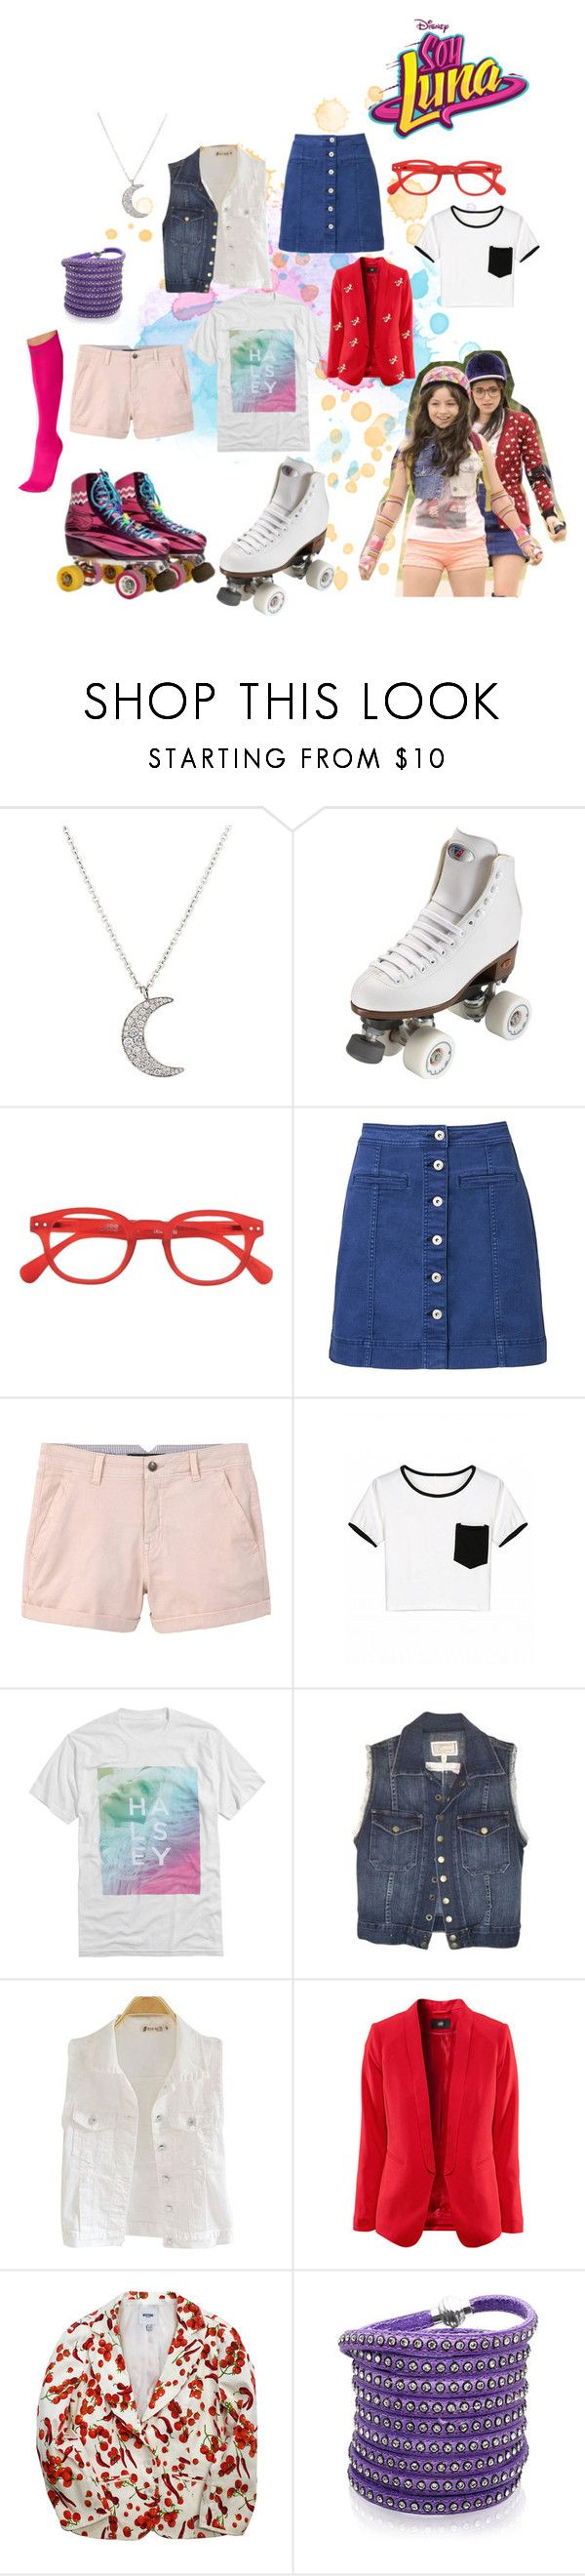 """soy luna"" by maria-look on Polyvore featuring Finn, Riedell, Witchery, MANGO, Current/Elliott, Moschino, Sif Jakobs Jewellery and Pretty Polly"